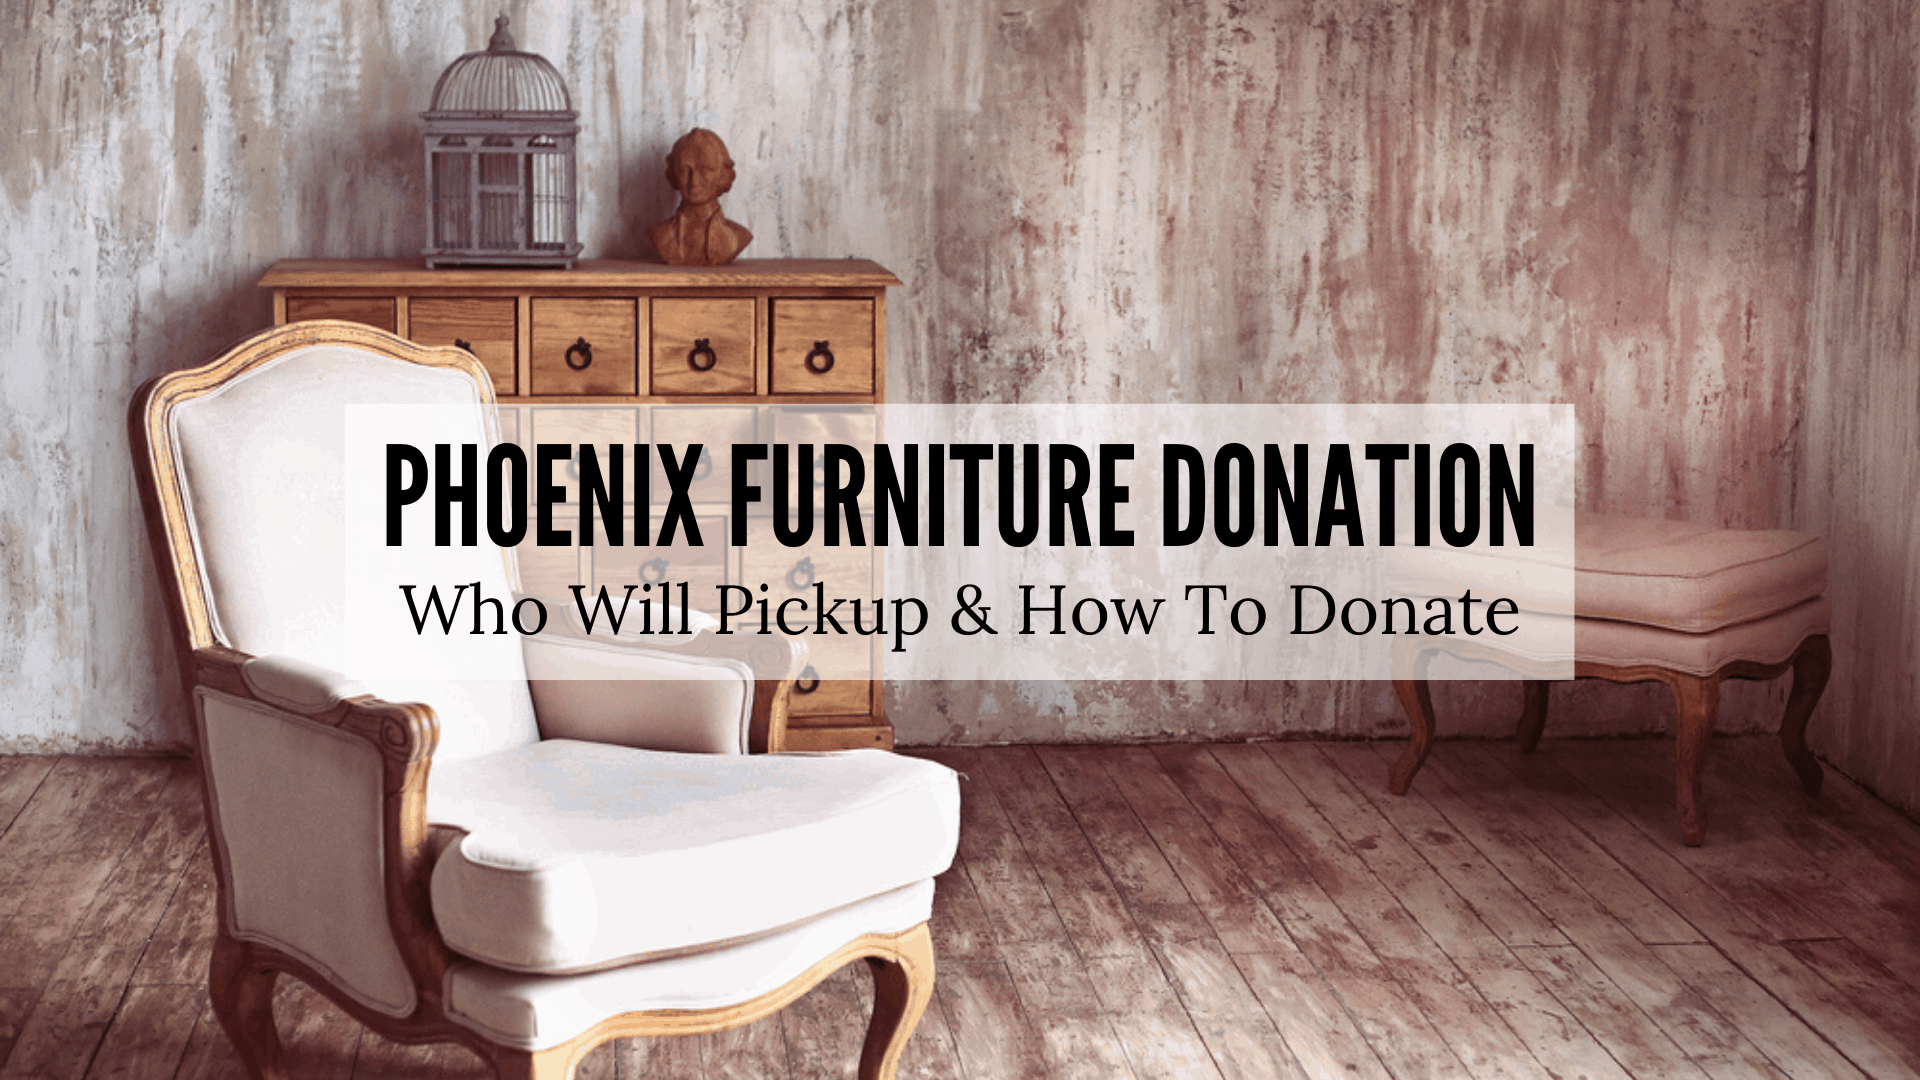 Phoenix Furniture Donation - Who Will Pickup & How to Donate